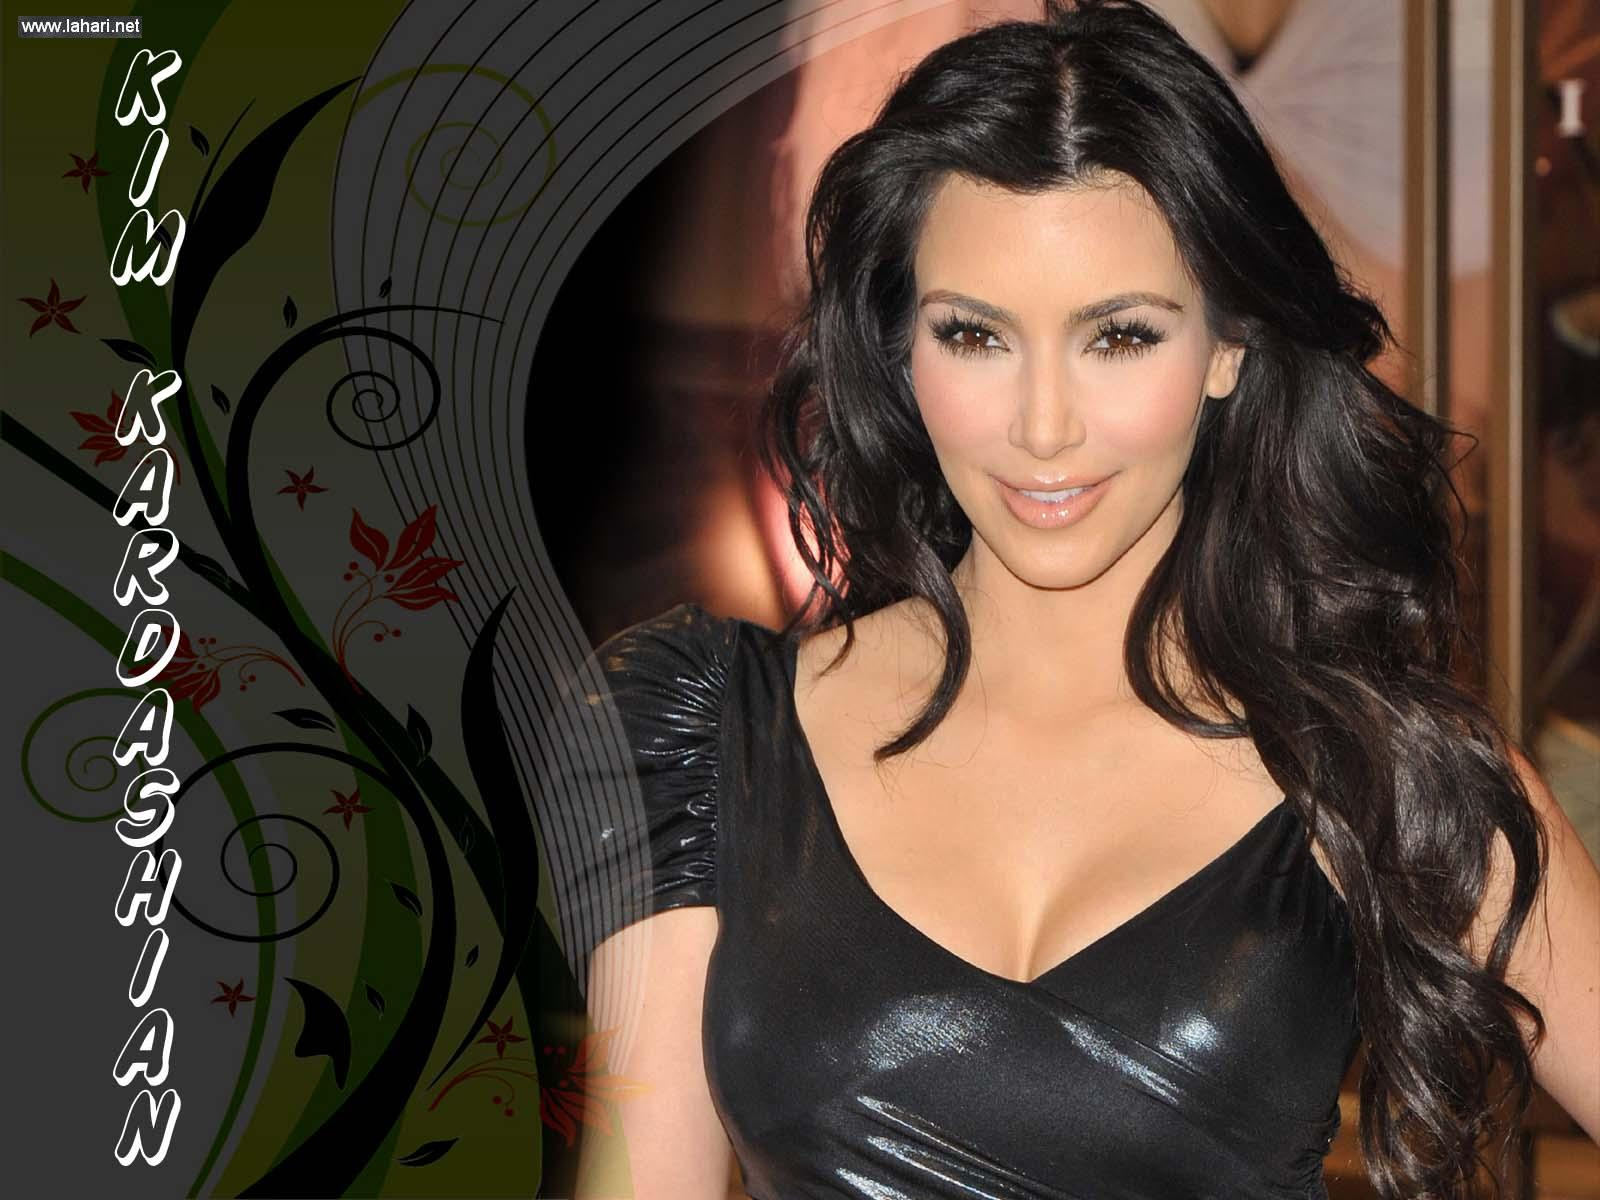 HD WALLPAPERS: Kim Kardashian Hot HD Wallpapers